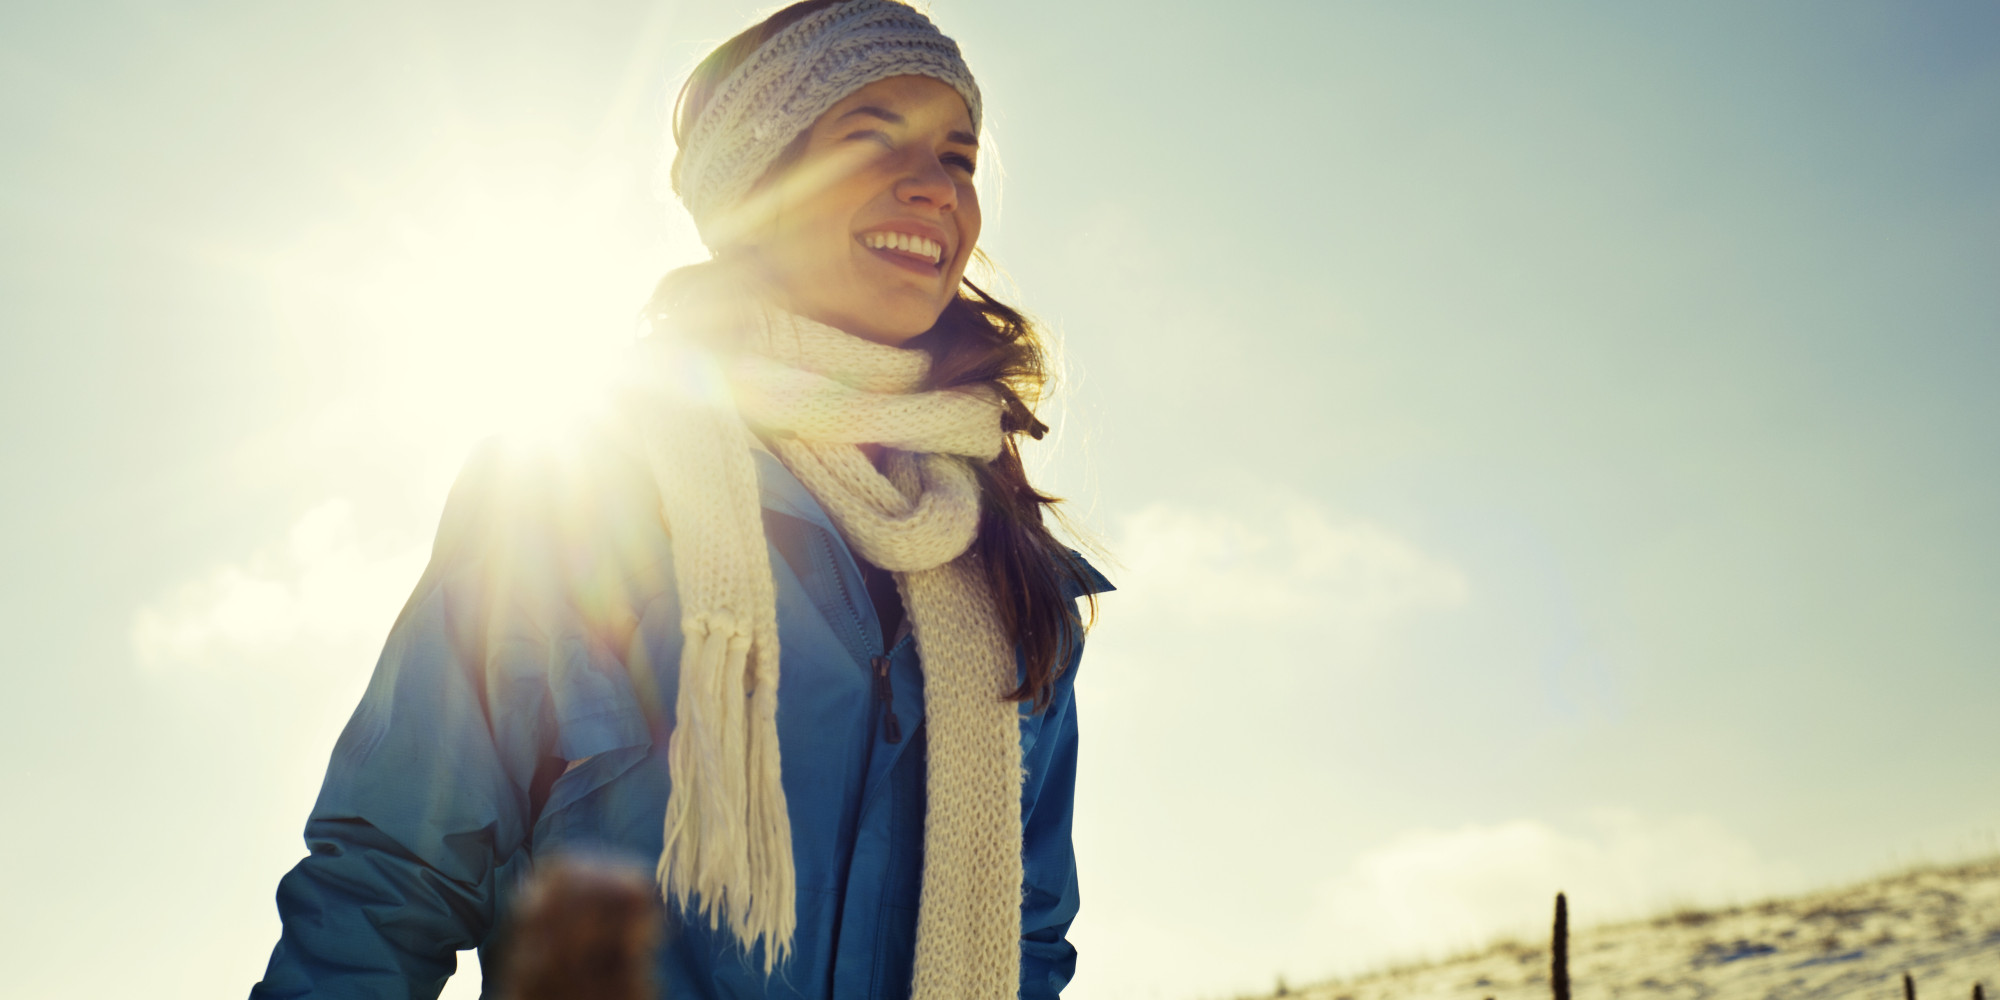 Keep Health In Mind As Cold Creeps Closer